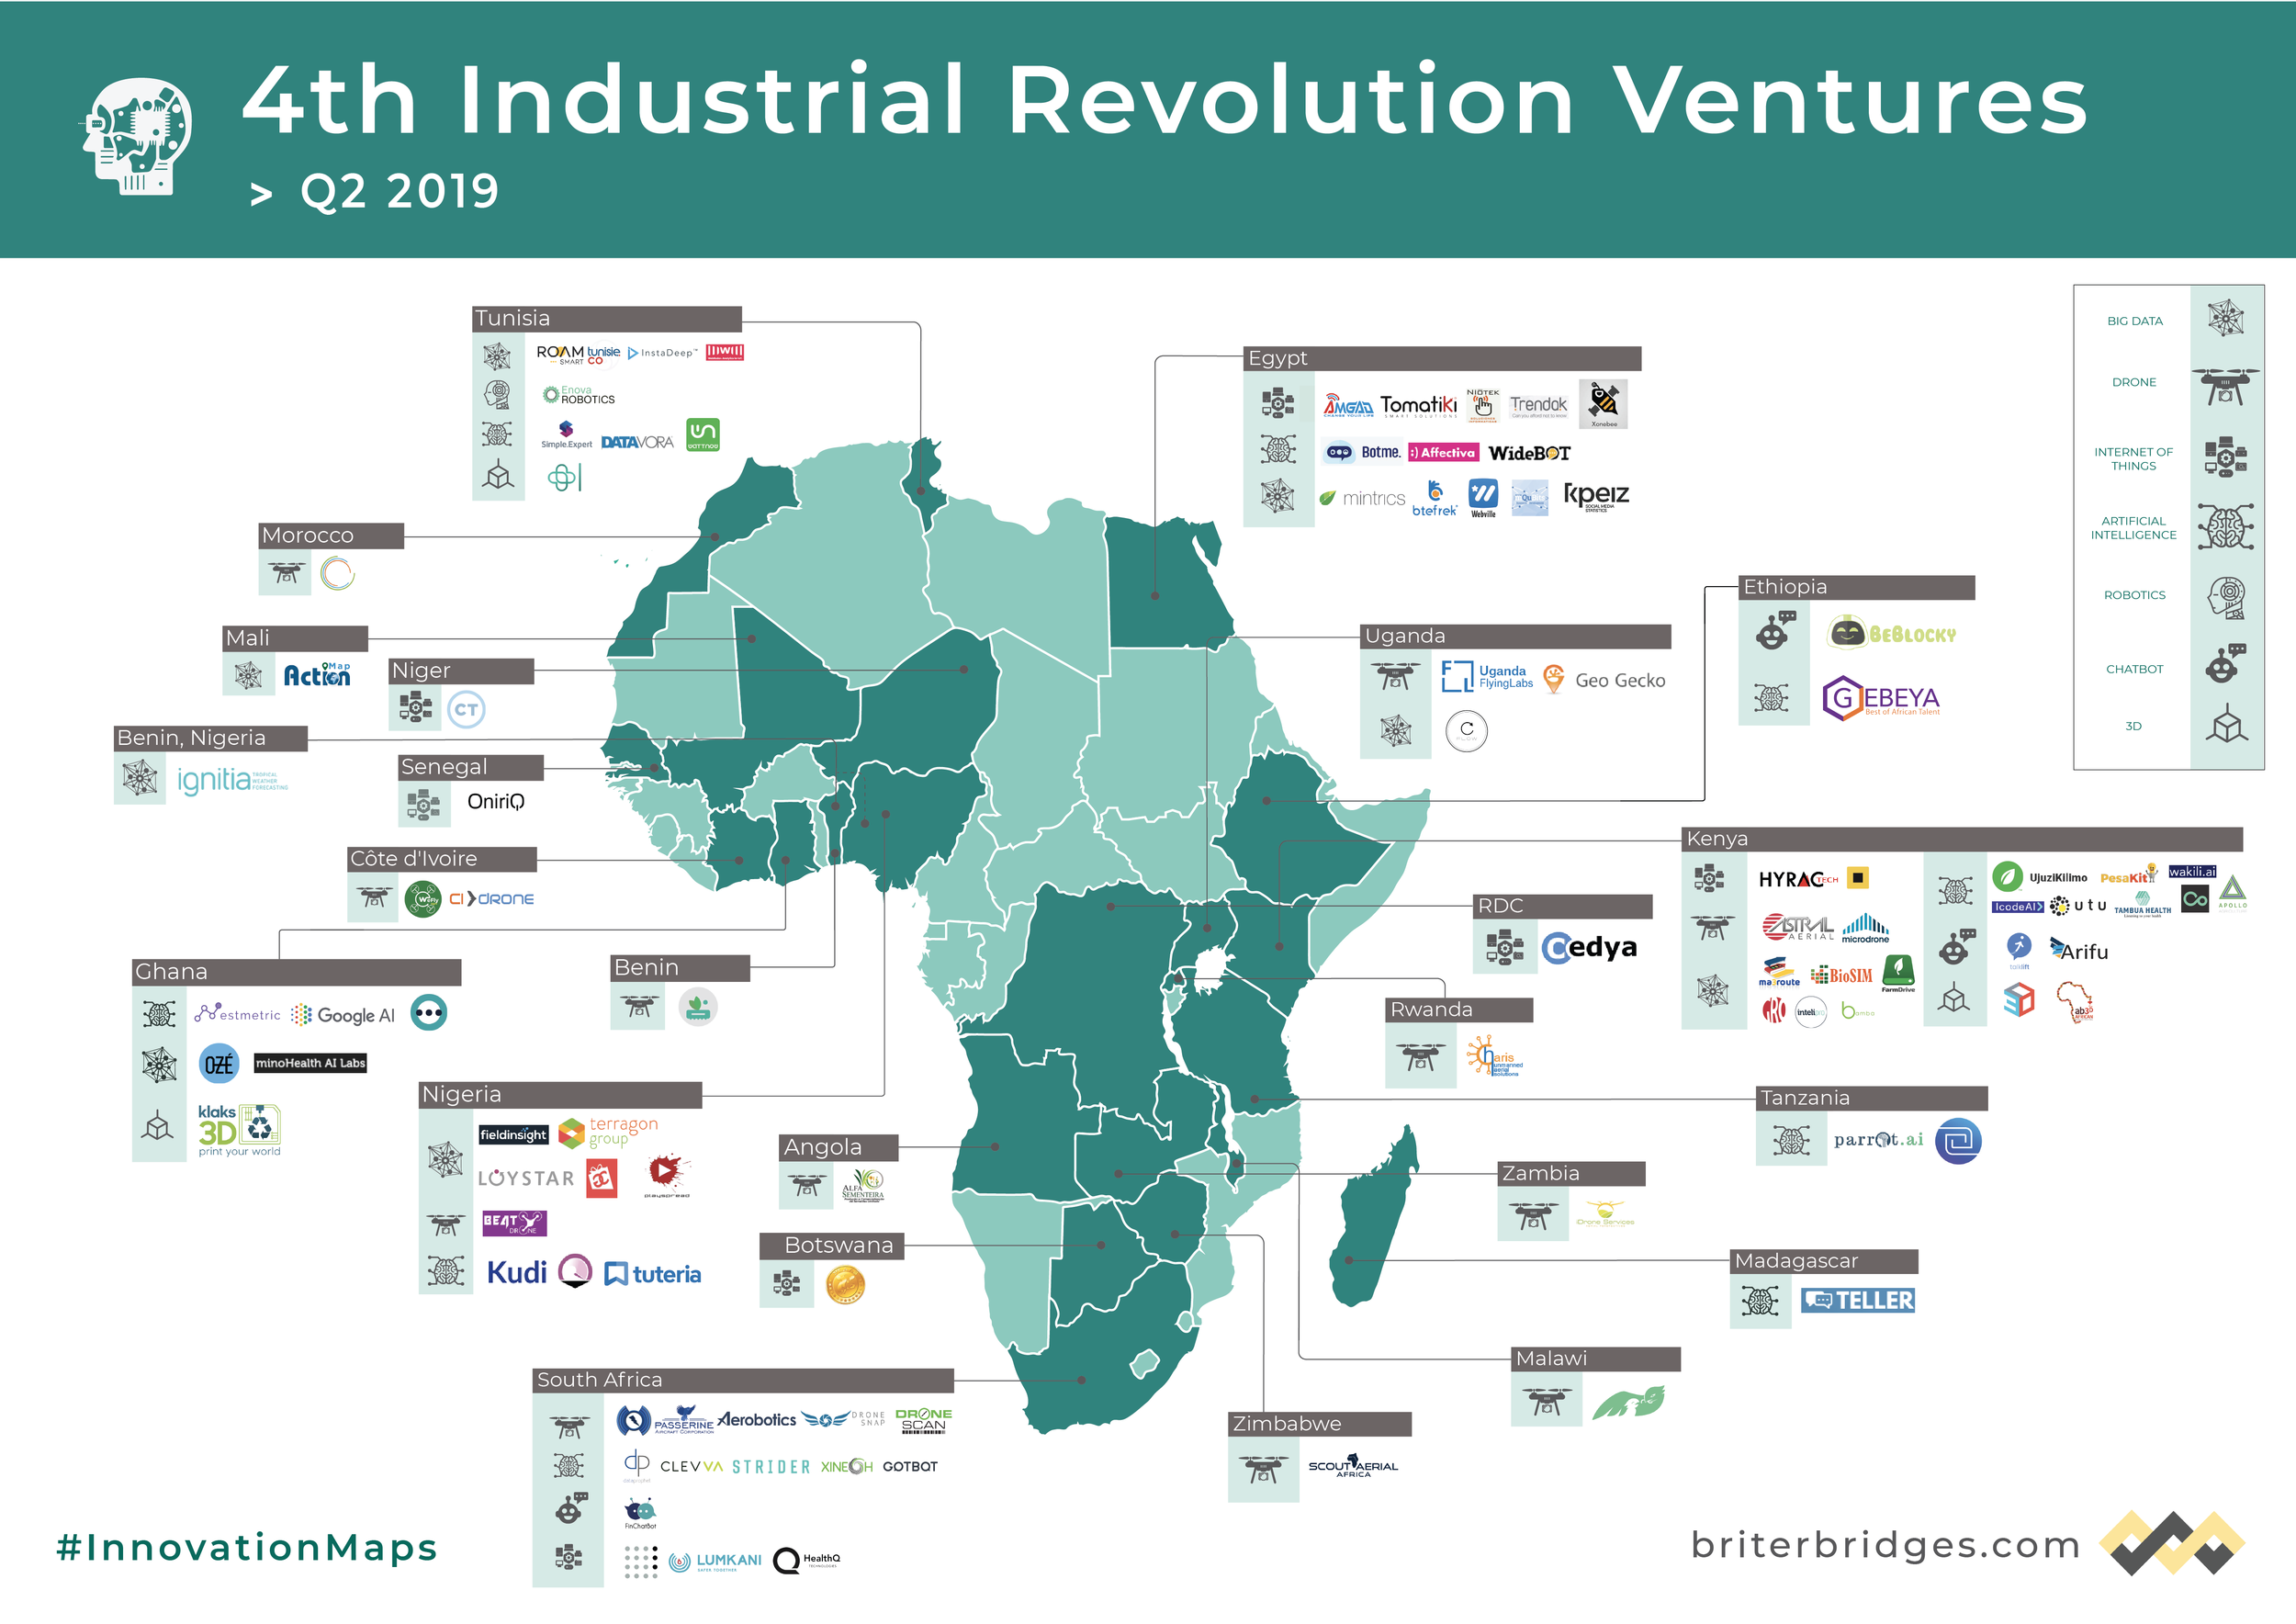 4th Industrial Revolution Technologies across Africa